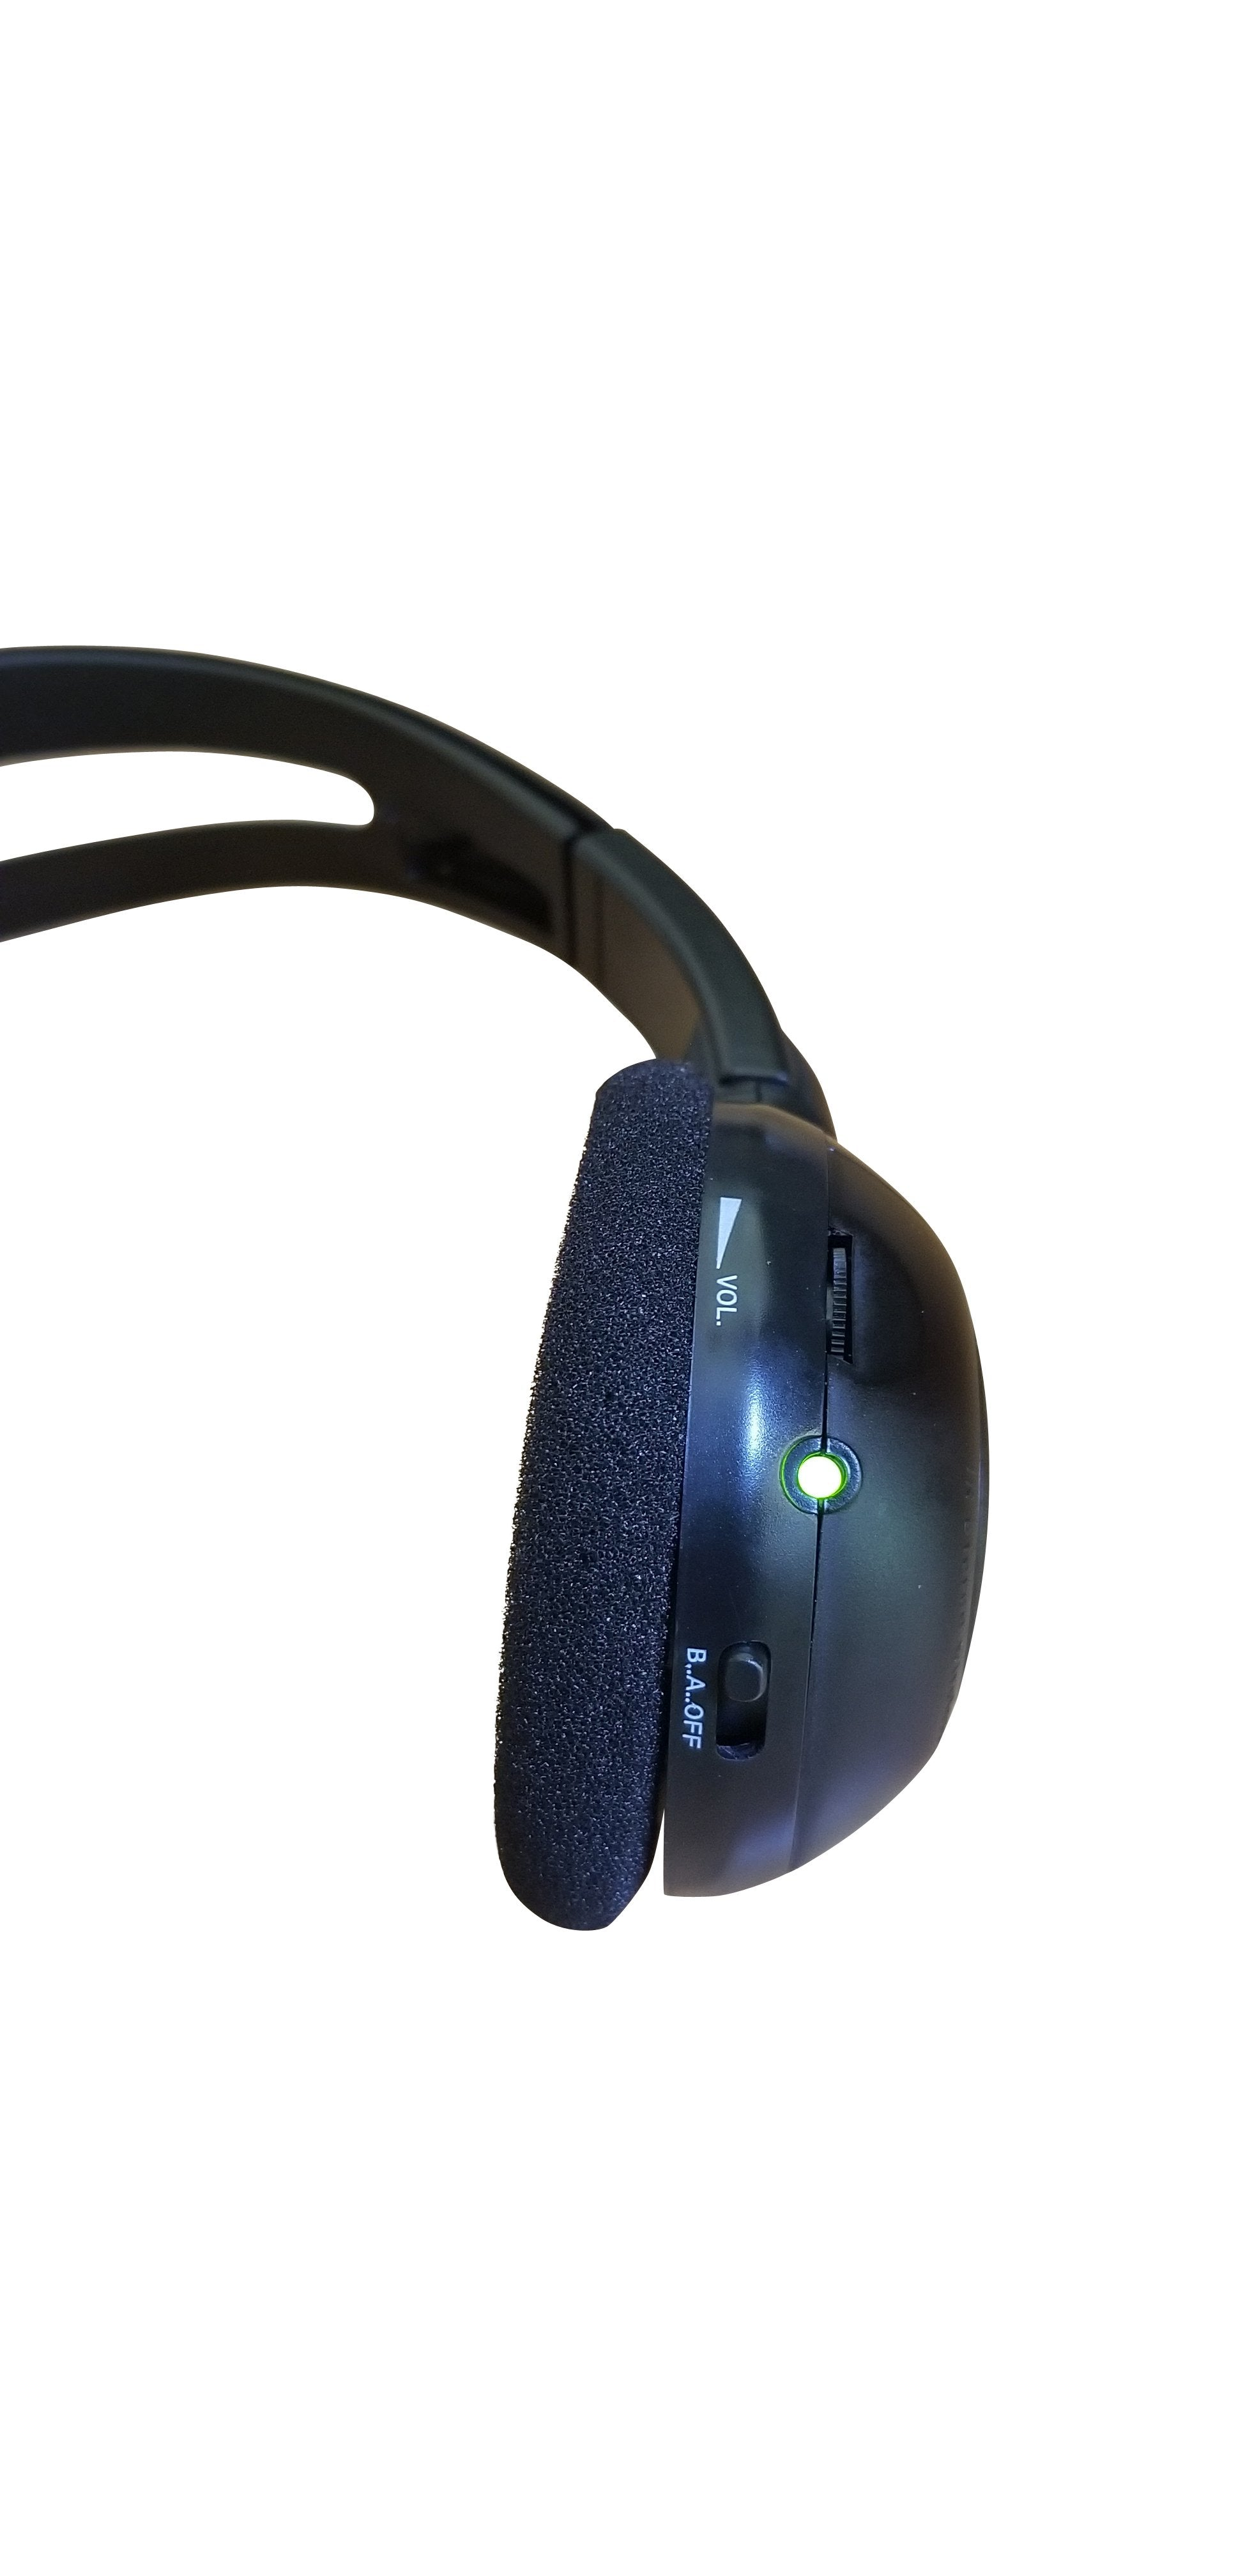 2010 Toyota Sienna Wireless DVD Headphone